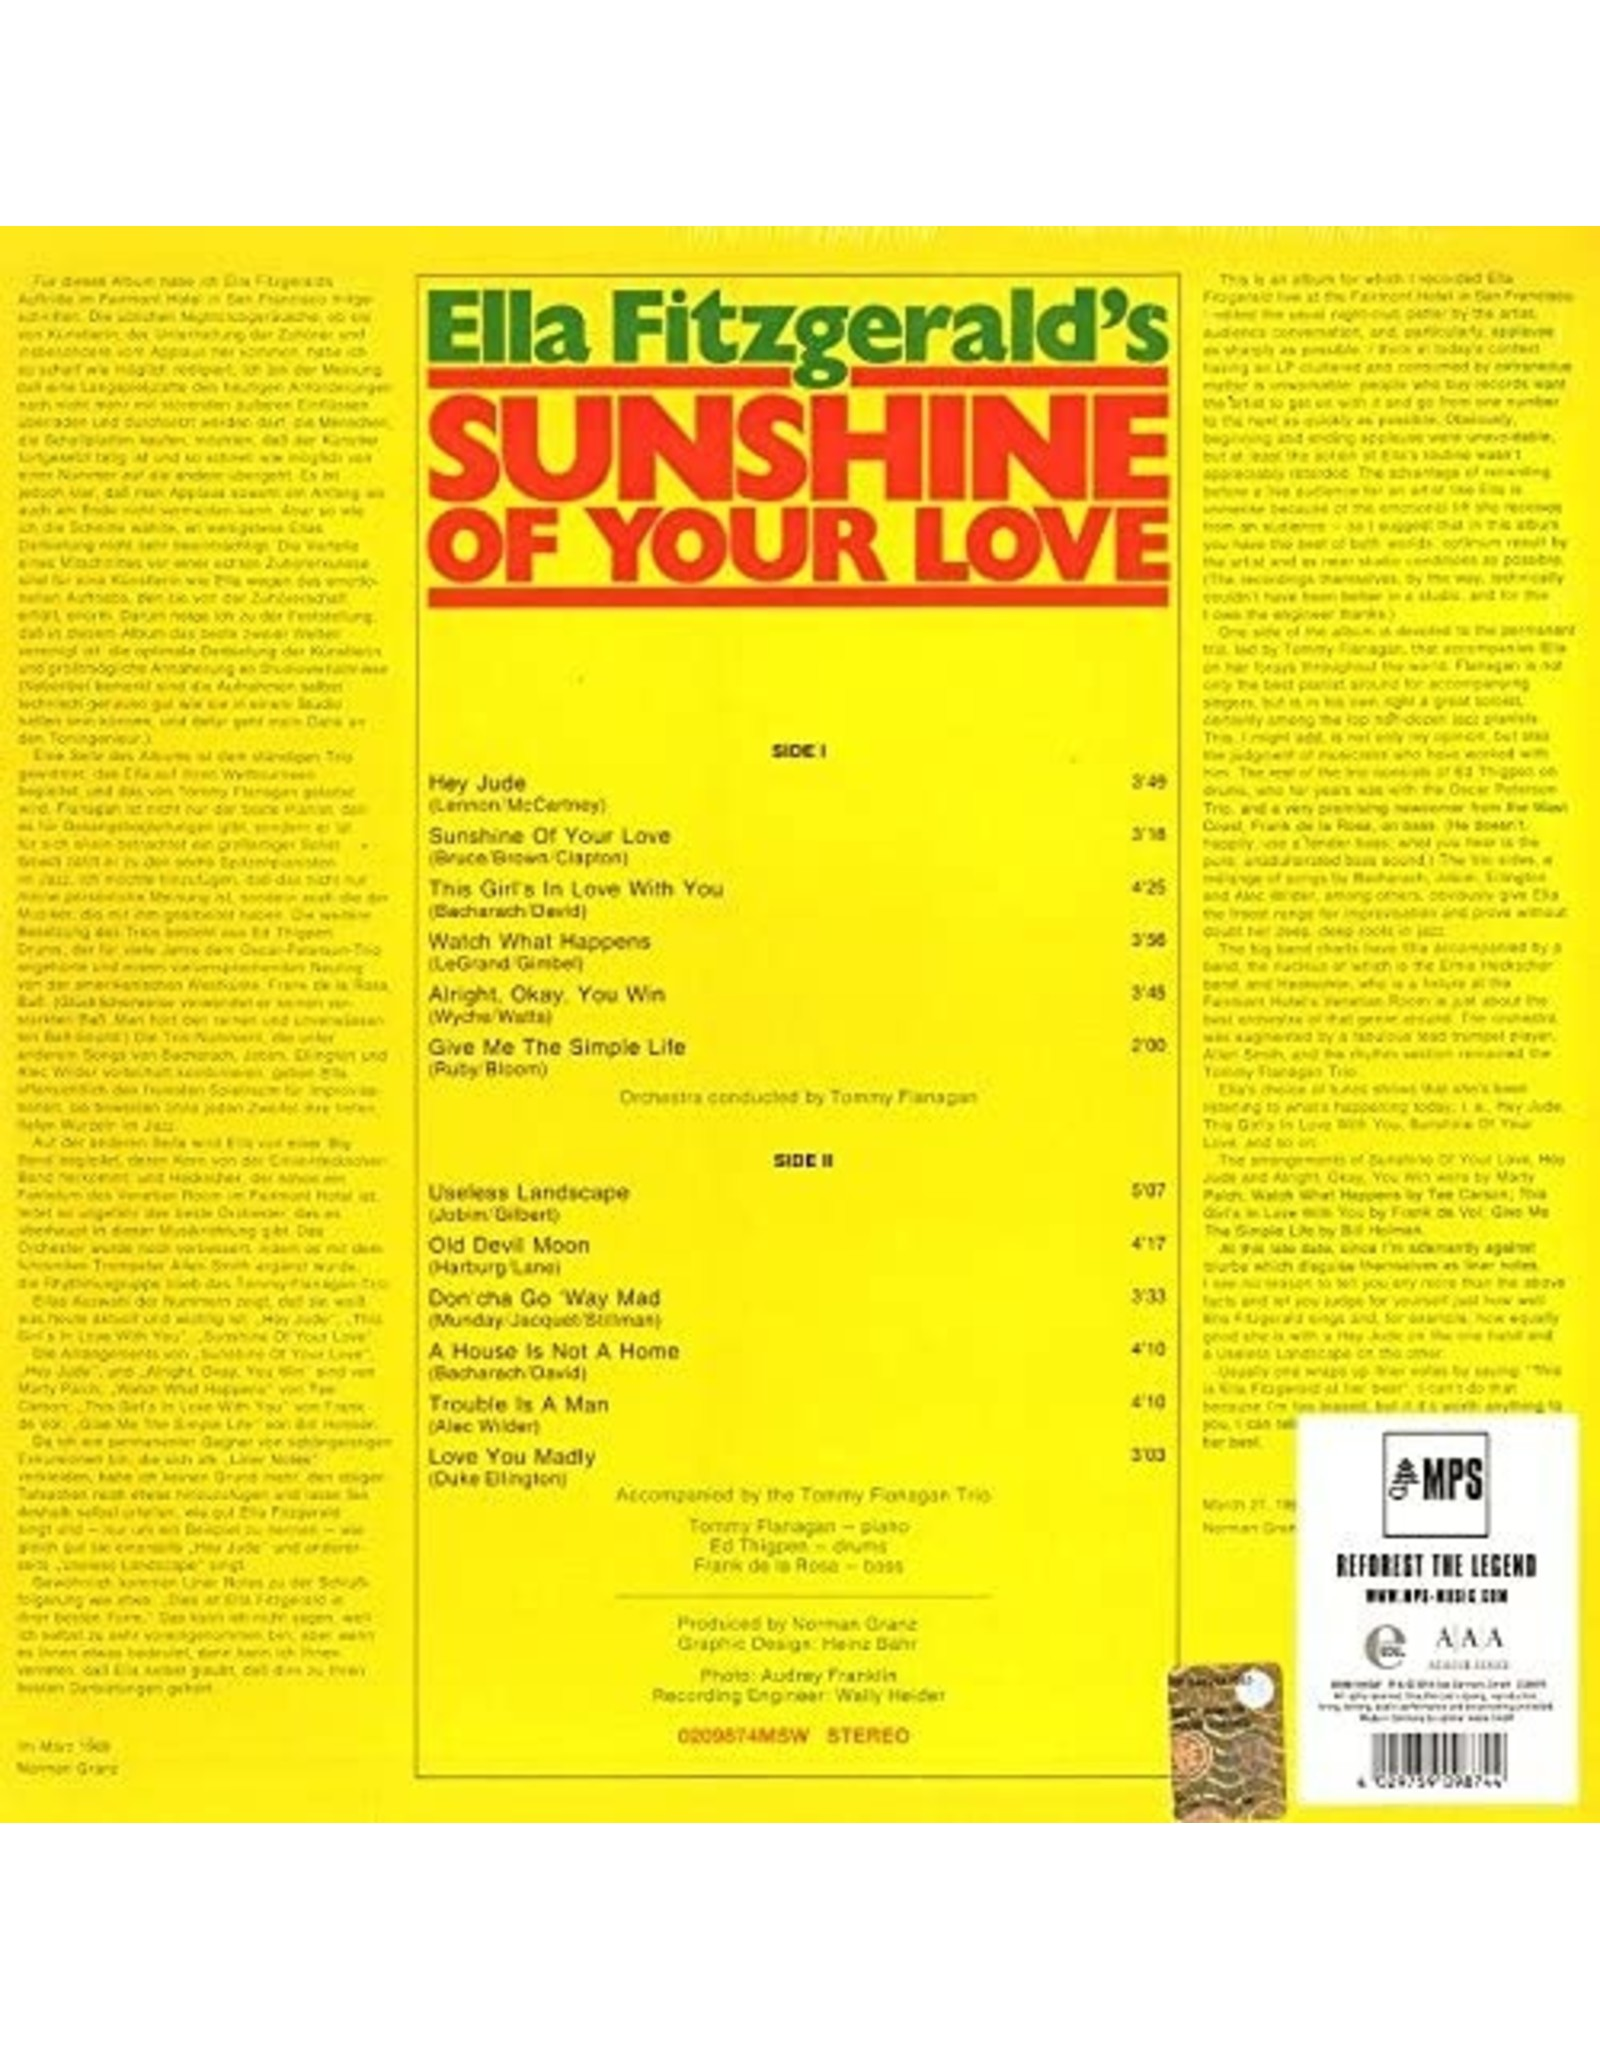 Ella Fitzgerald - Sunshine Of Your Love (MPS AAA Series)